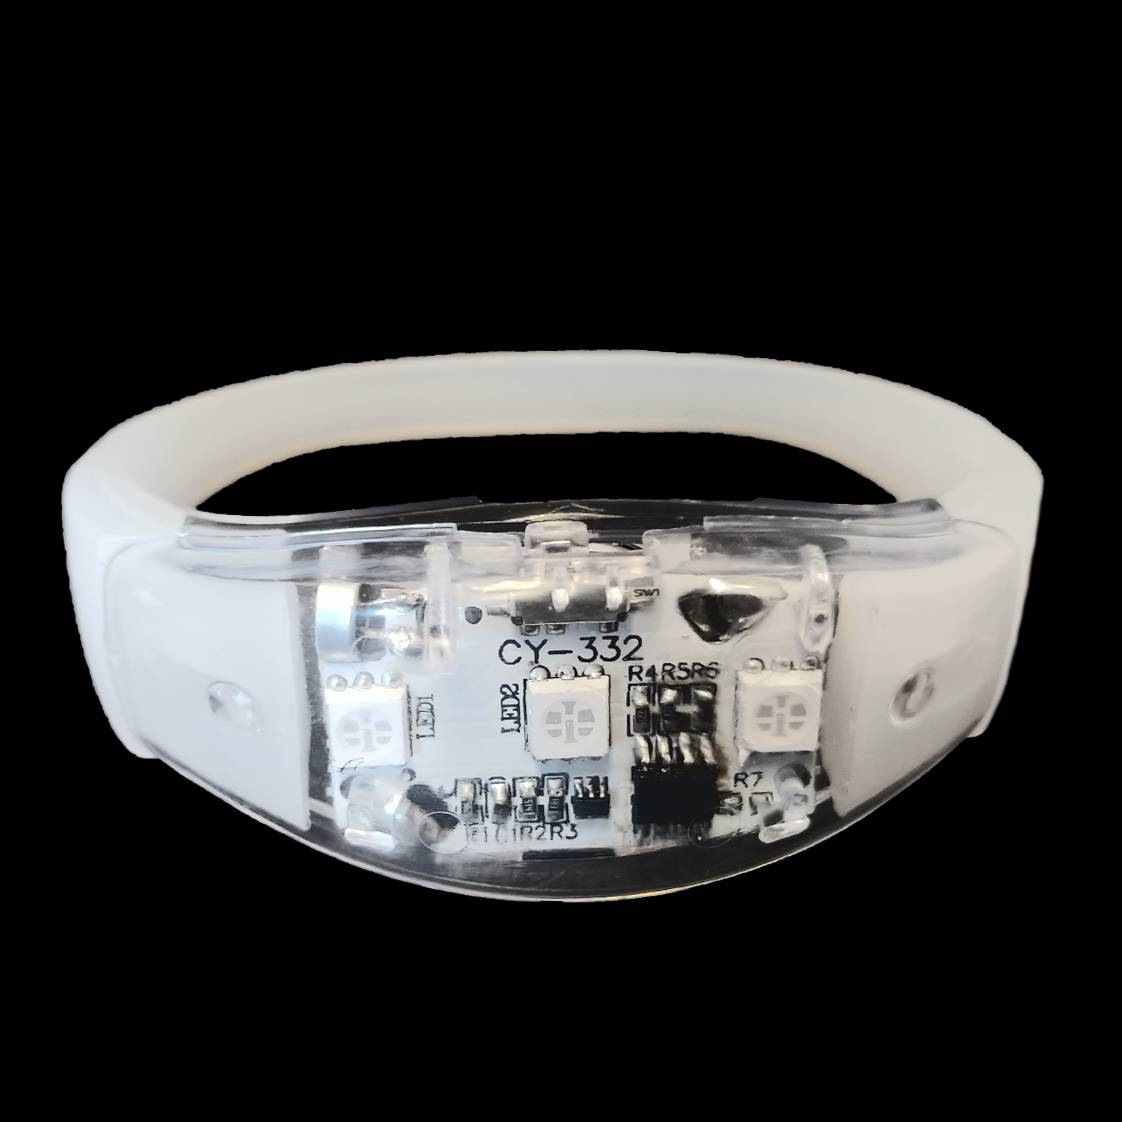 Led armband Wit (reageert op geluid)